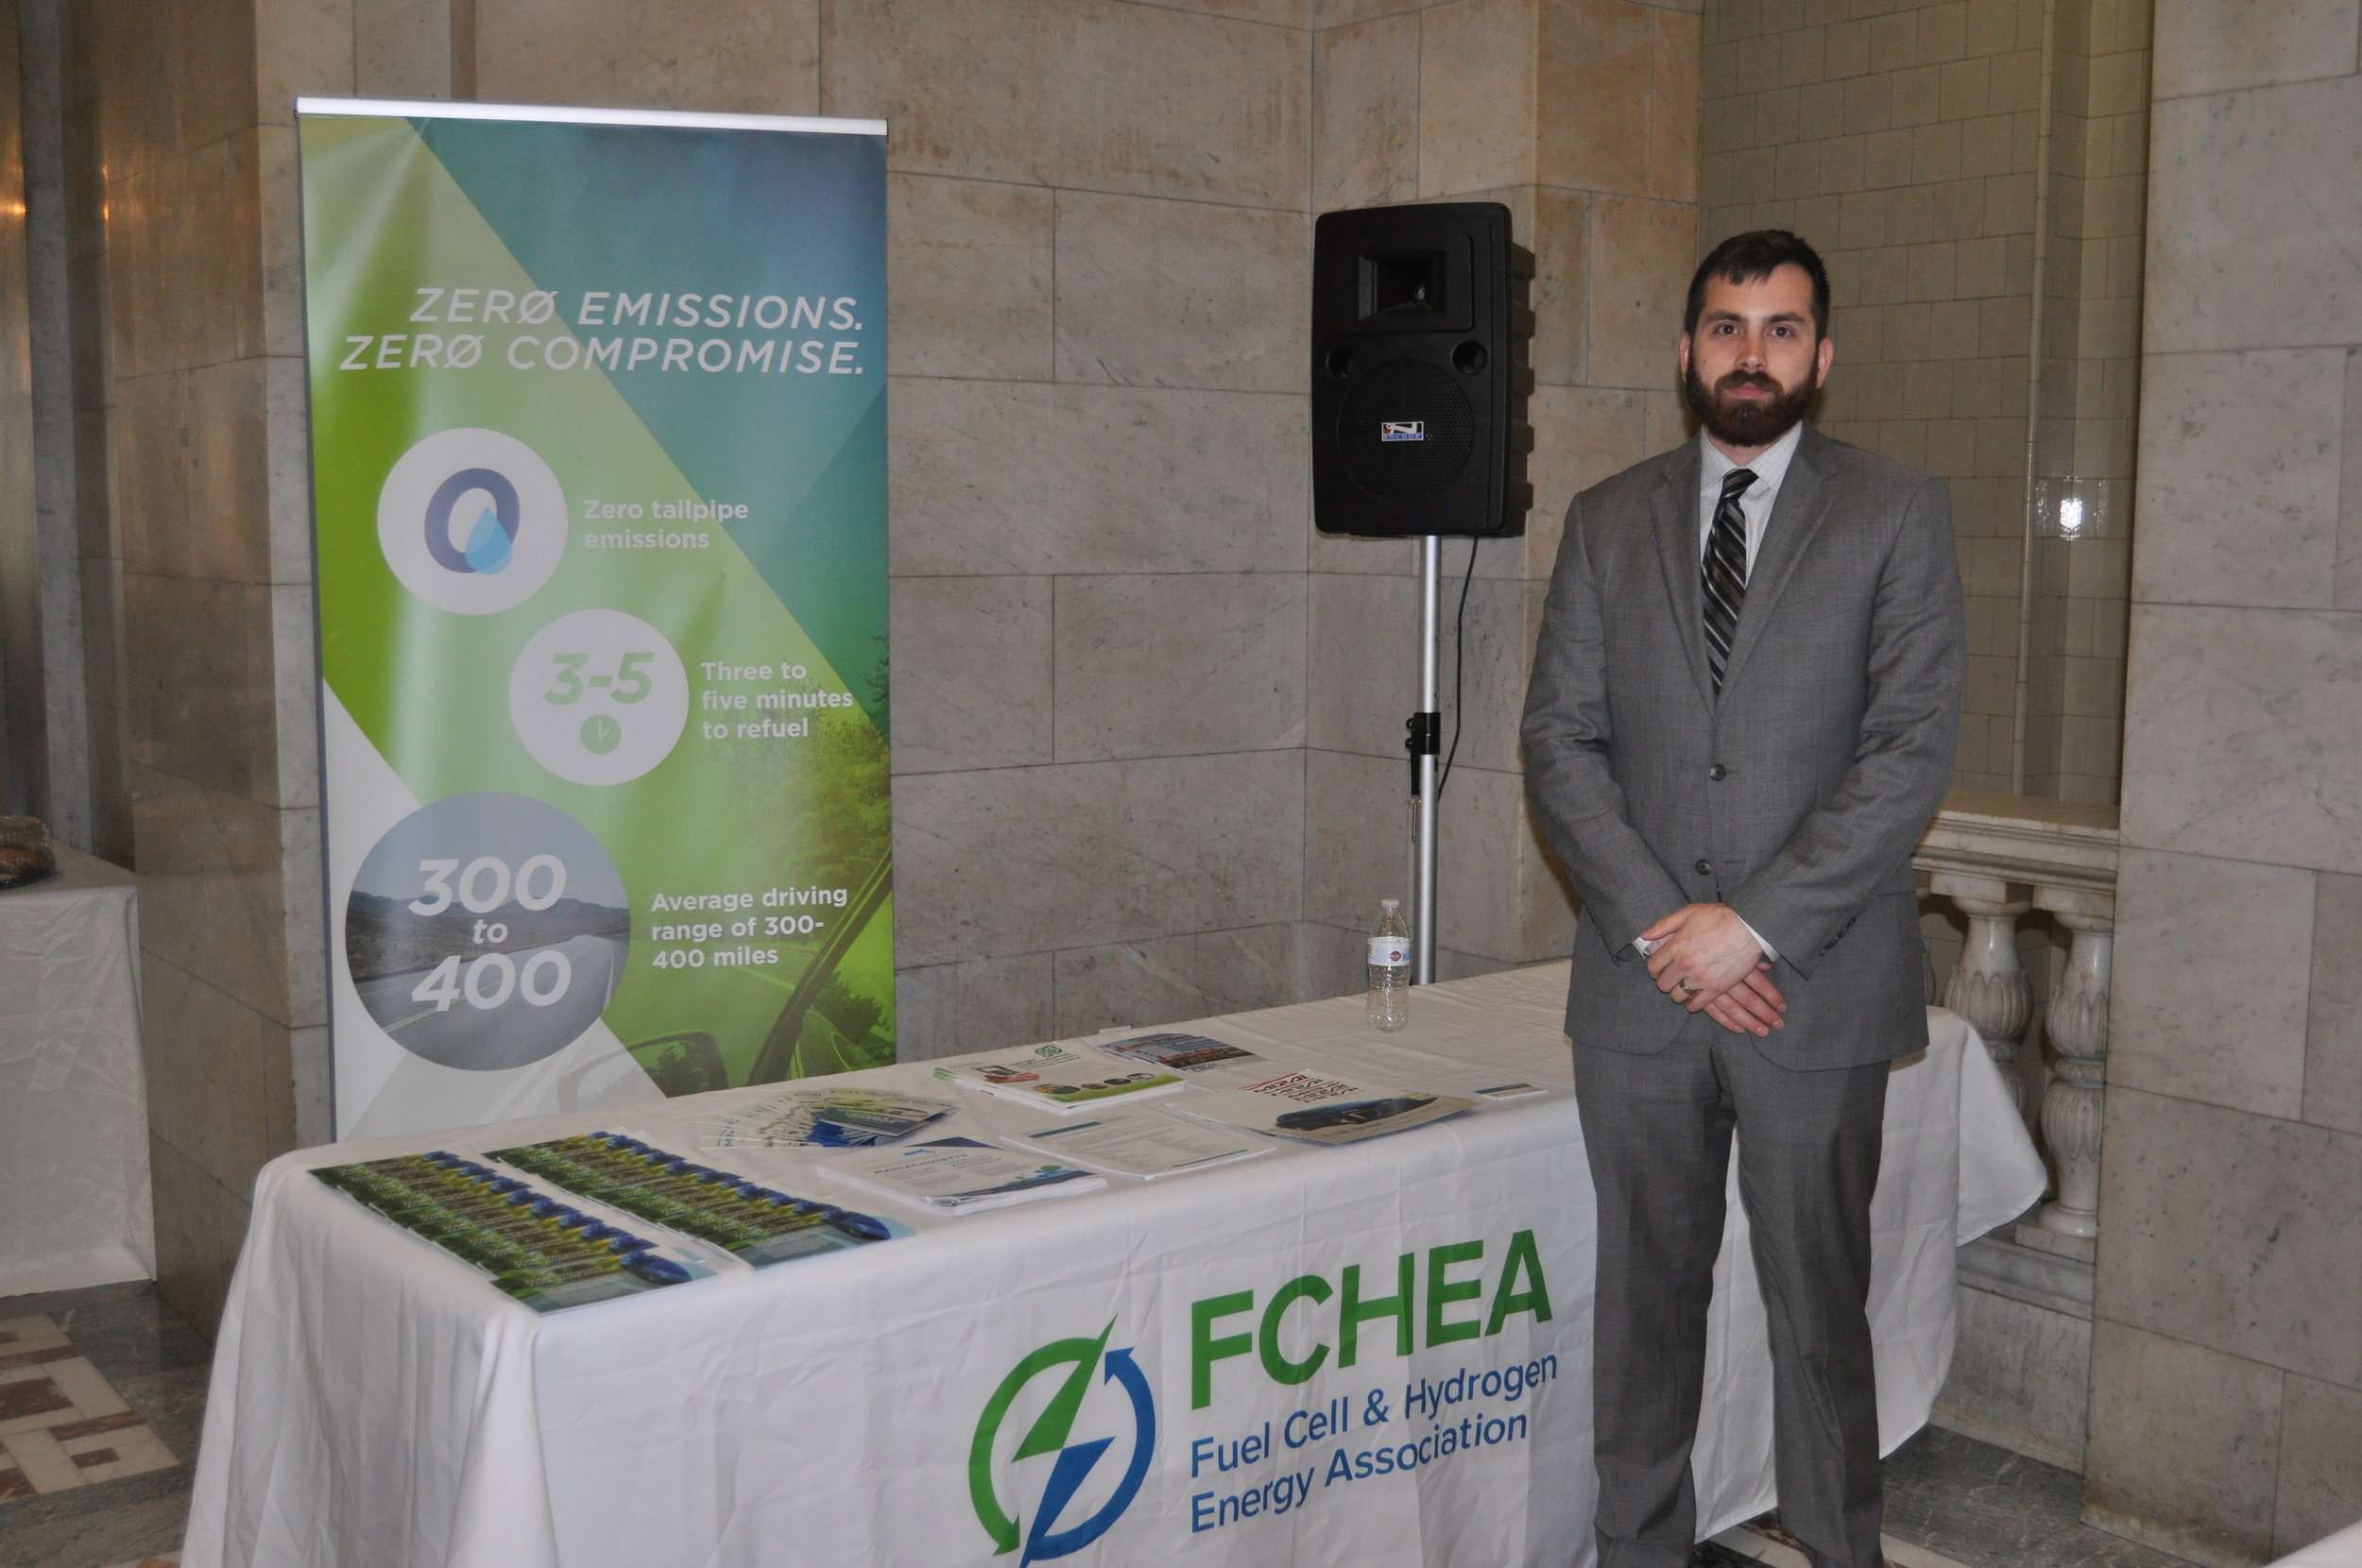 FCHEA's booth at the Clean Energy Business Showcase in the Massachusetts State House.